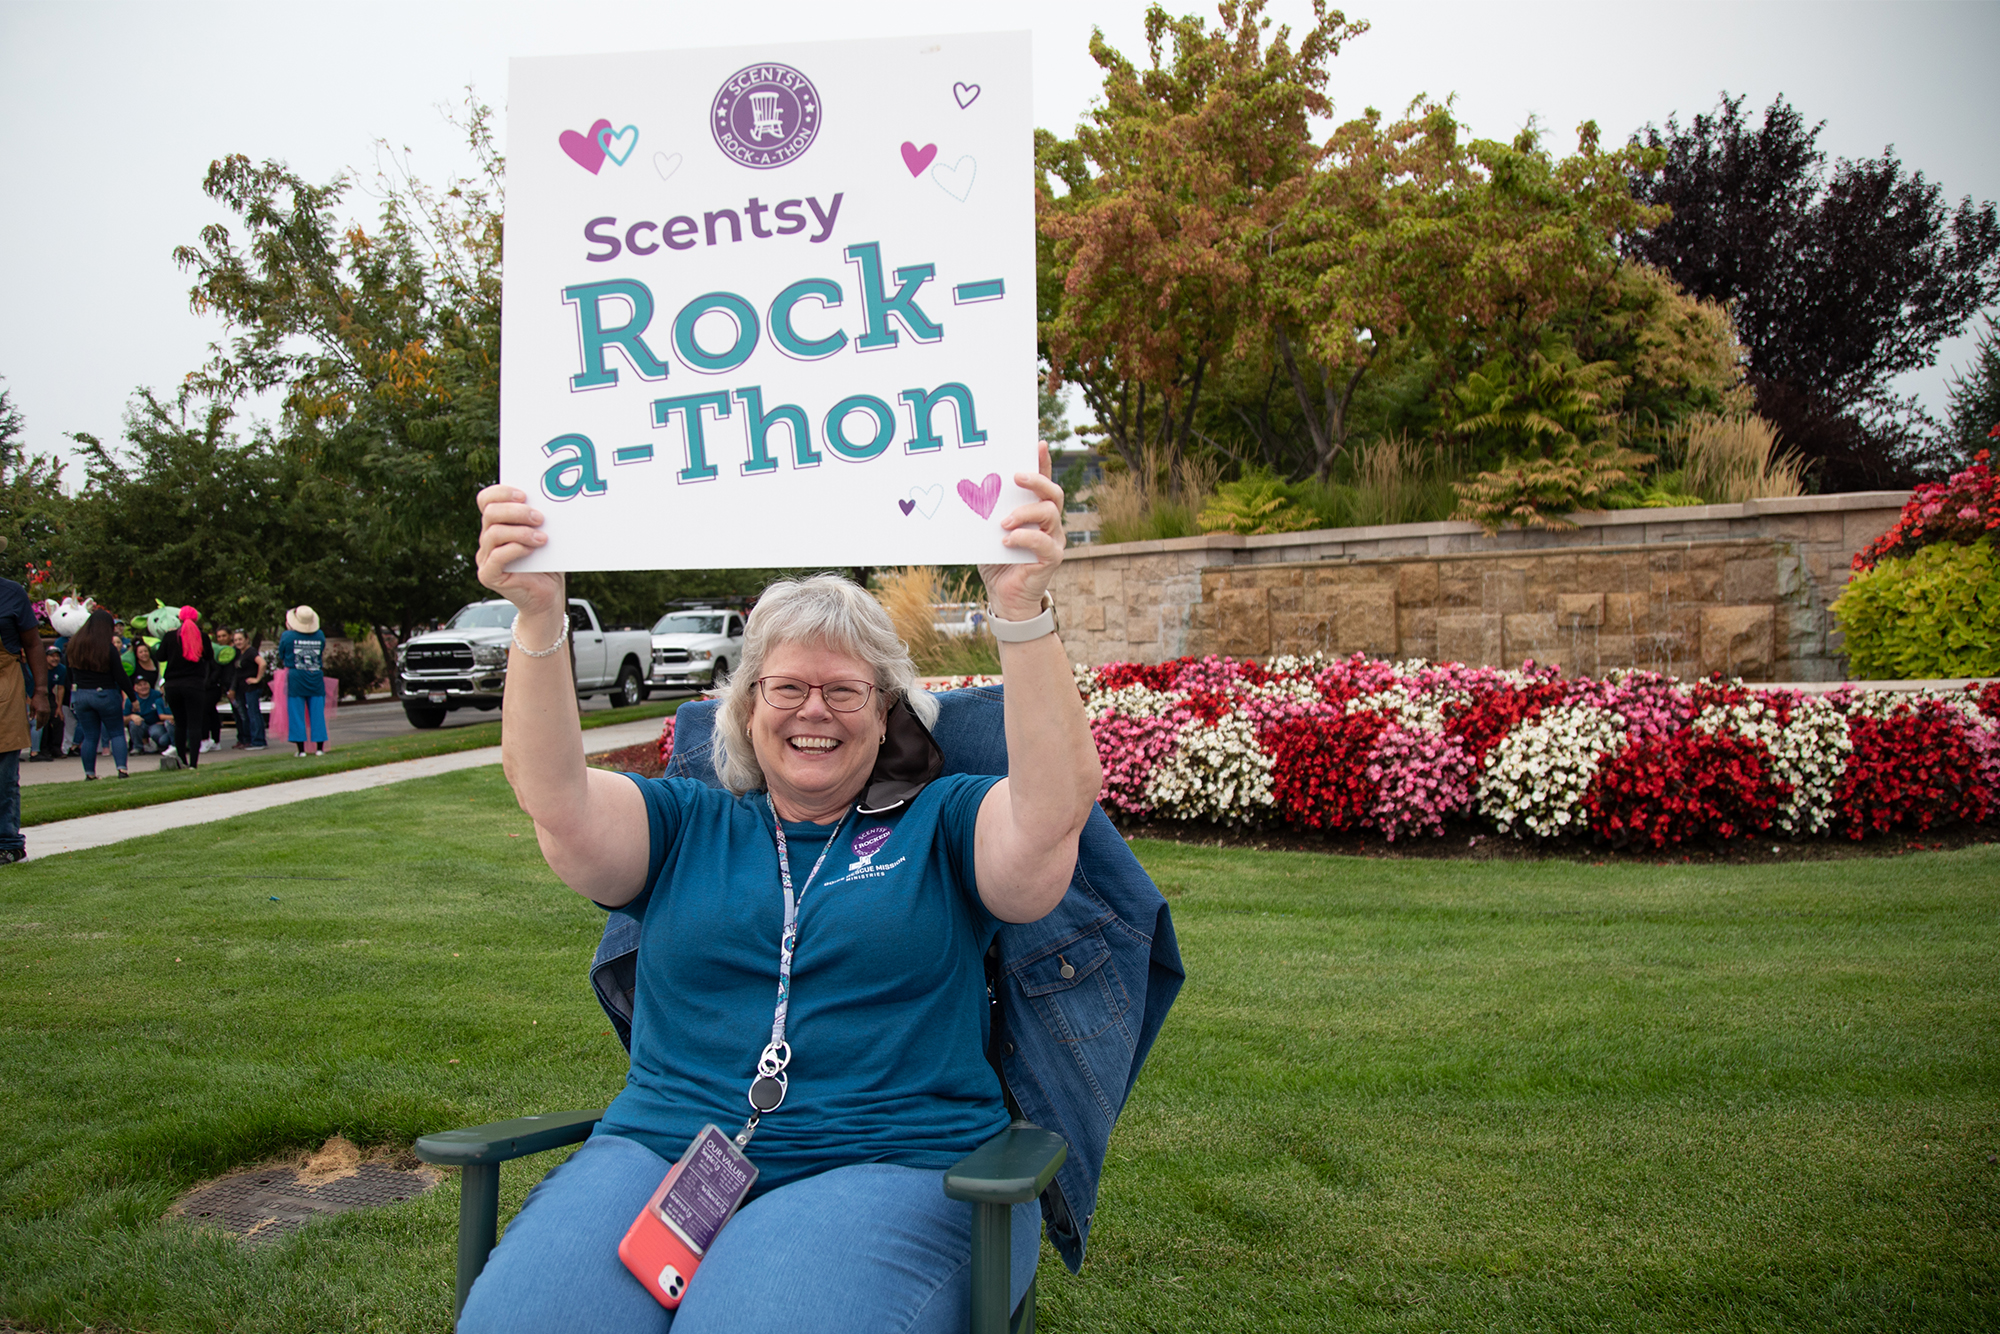 Scentsy Rock-a-Thon: Person rocking holding a sign